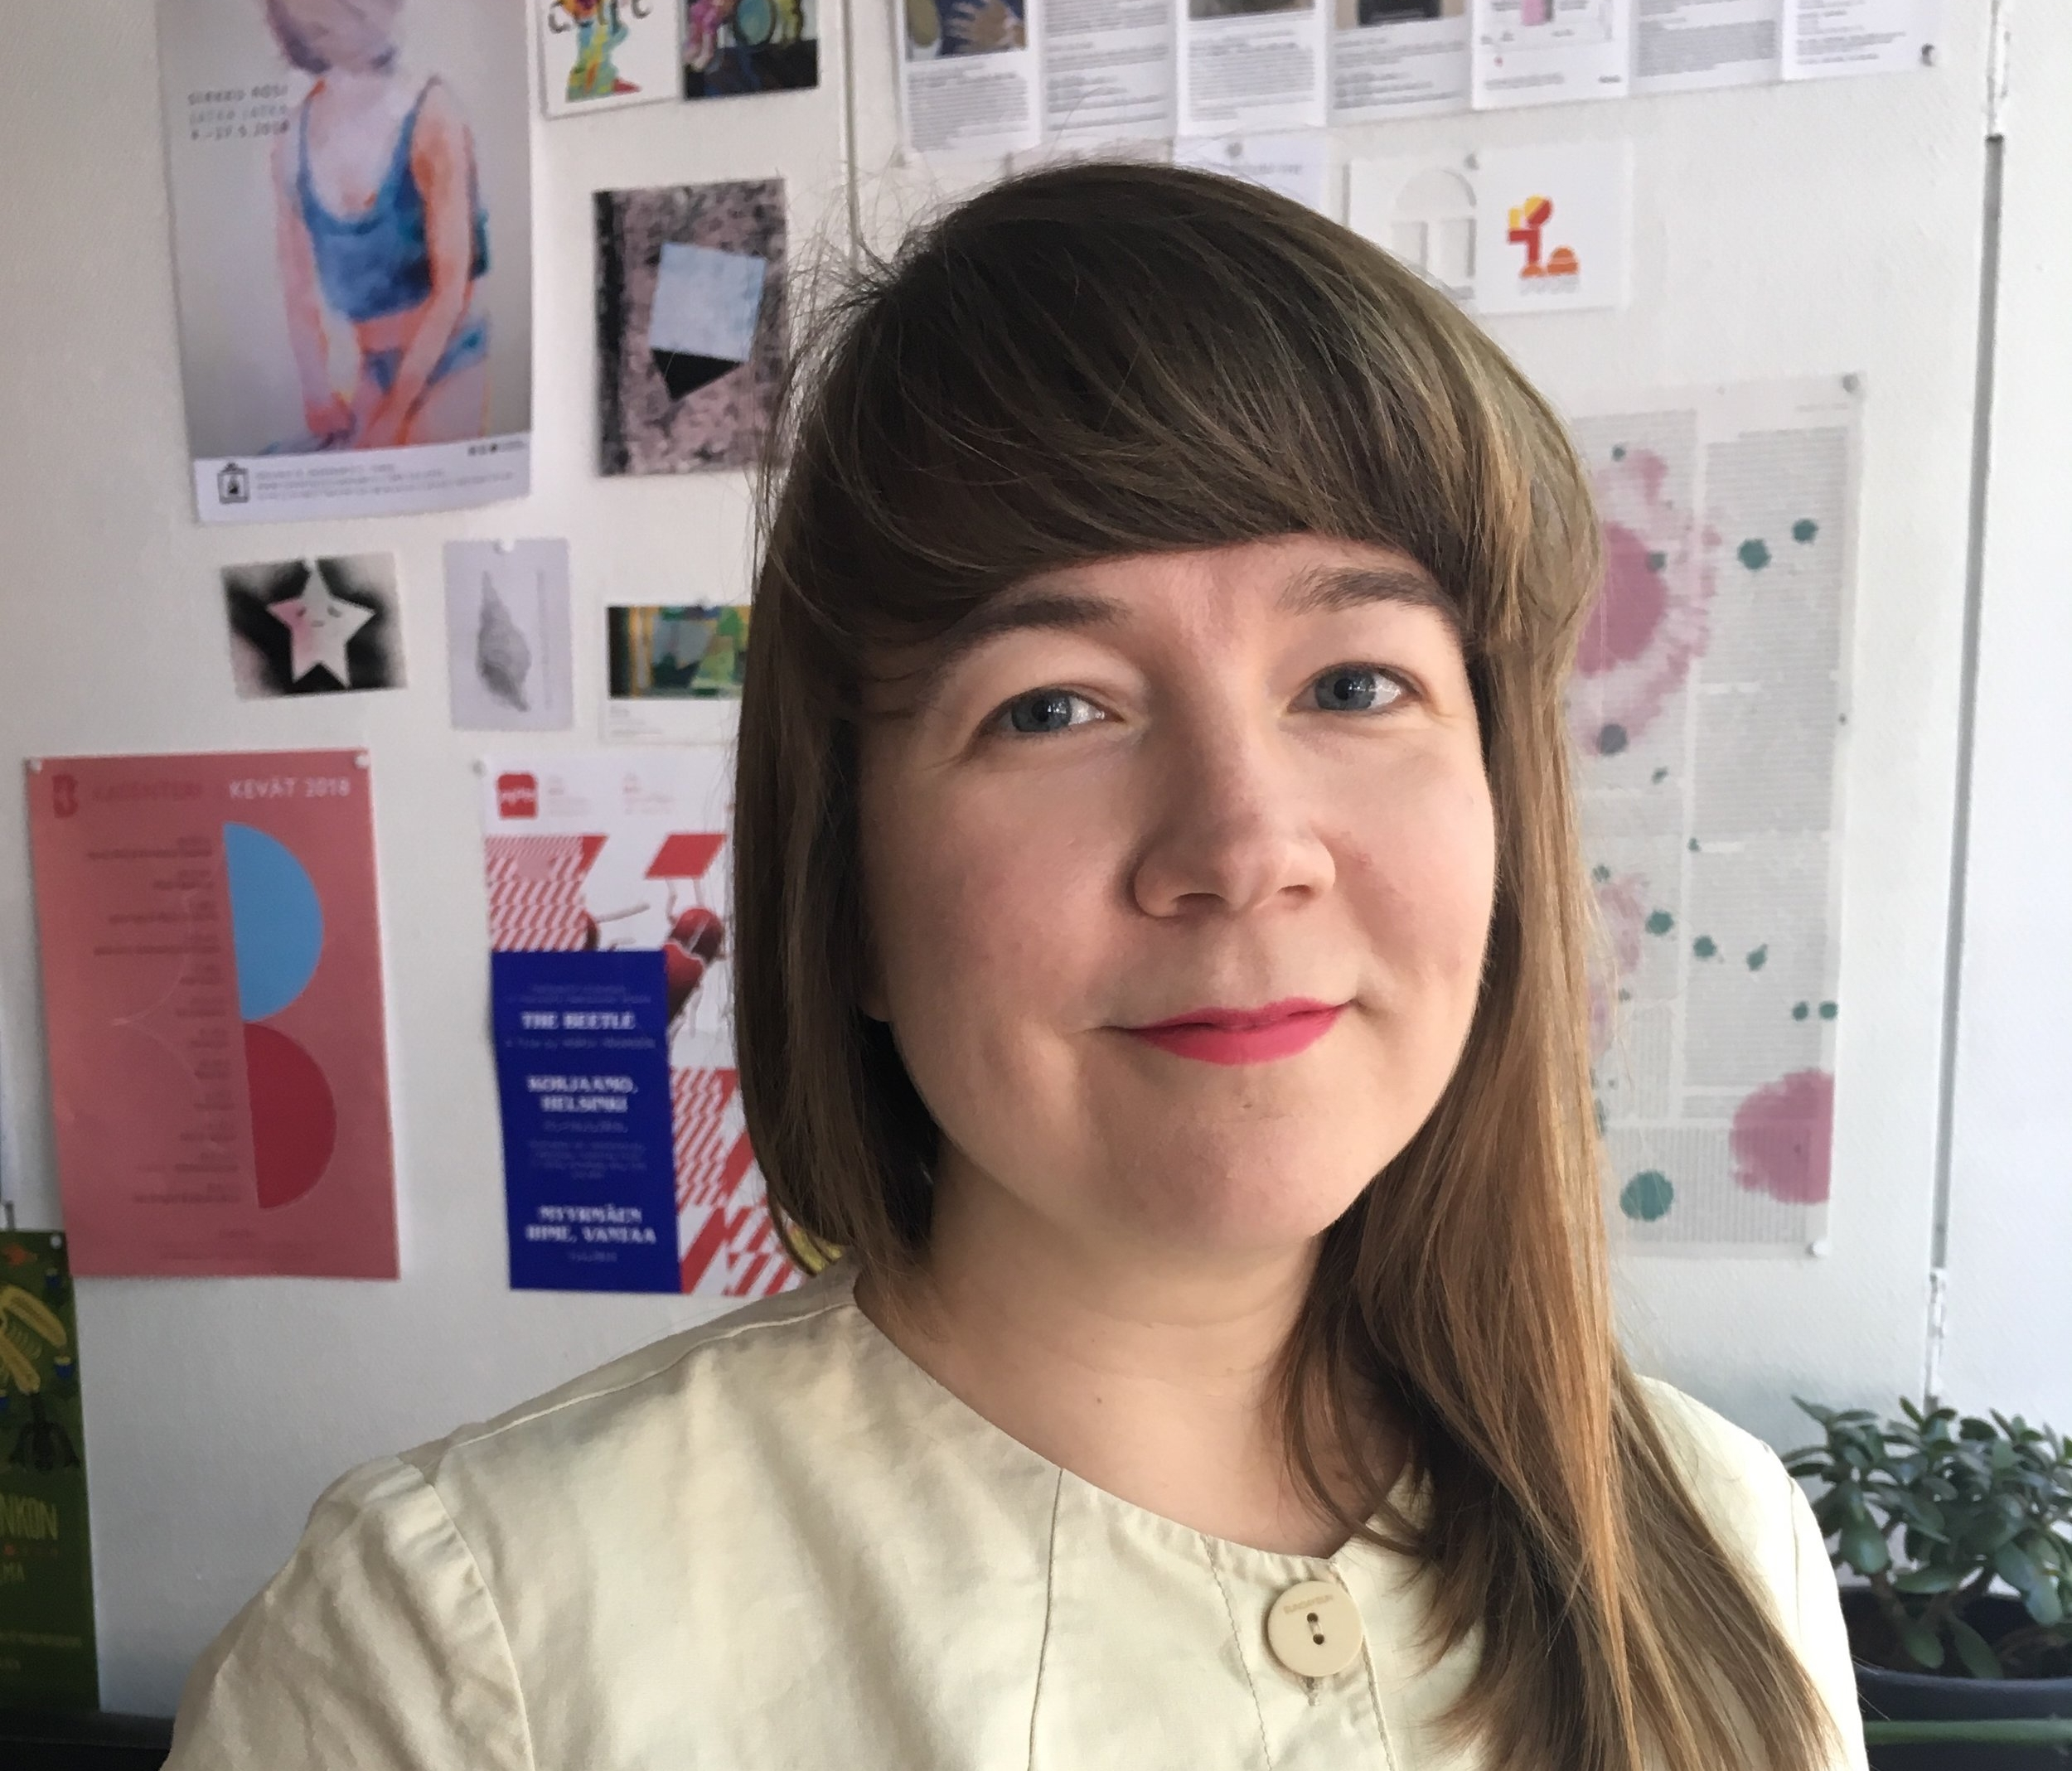 Elina Suoyrjö's curatorial residency at the ISCP will take place in October-November 2018. Suoyrjö is an independent curator and currently working as the director of Titanik art space in Turku, Finland.